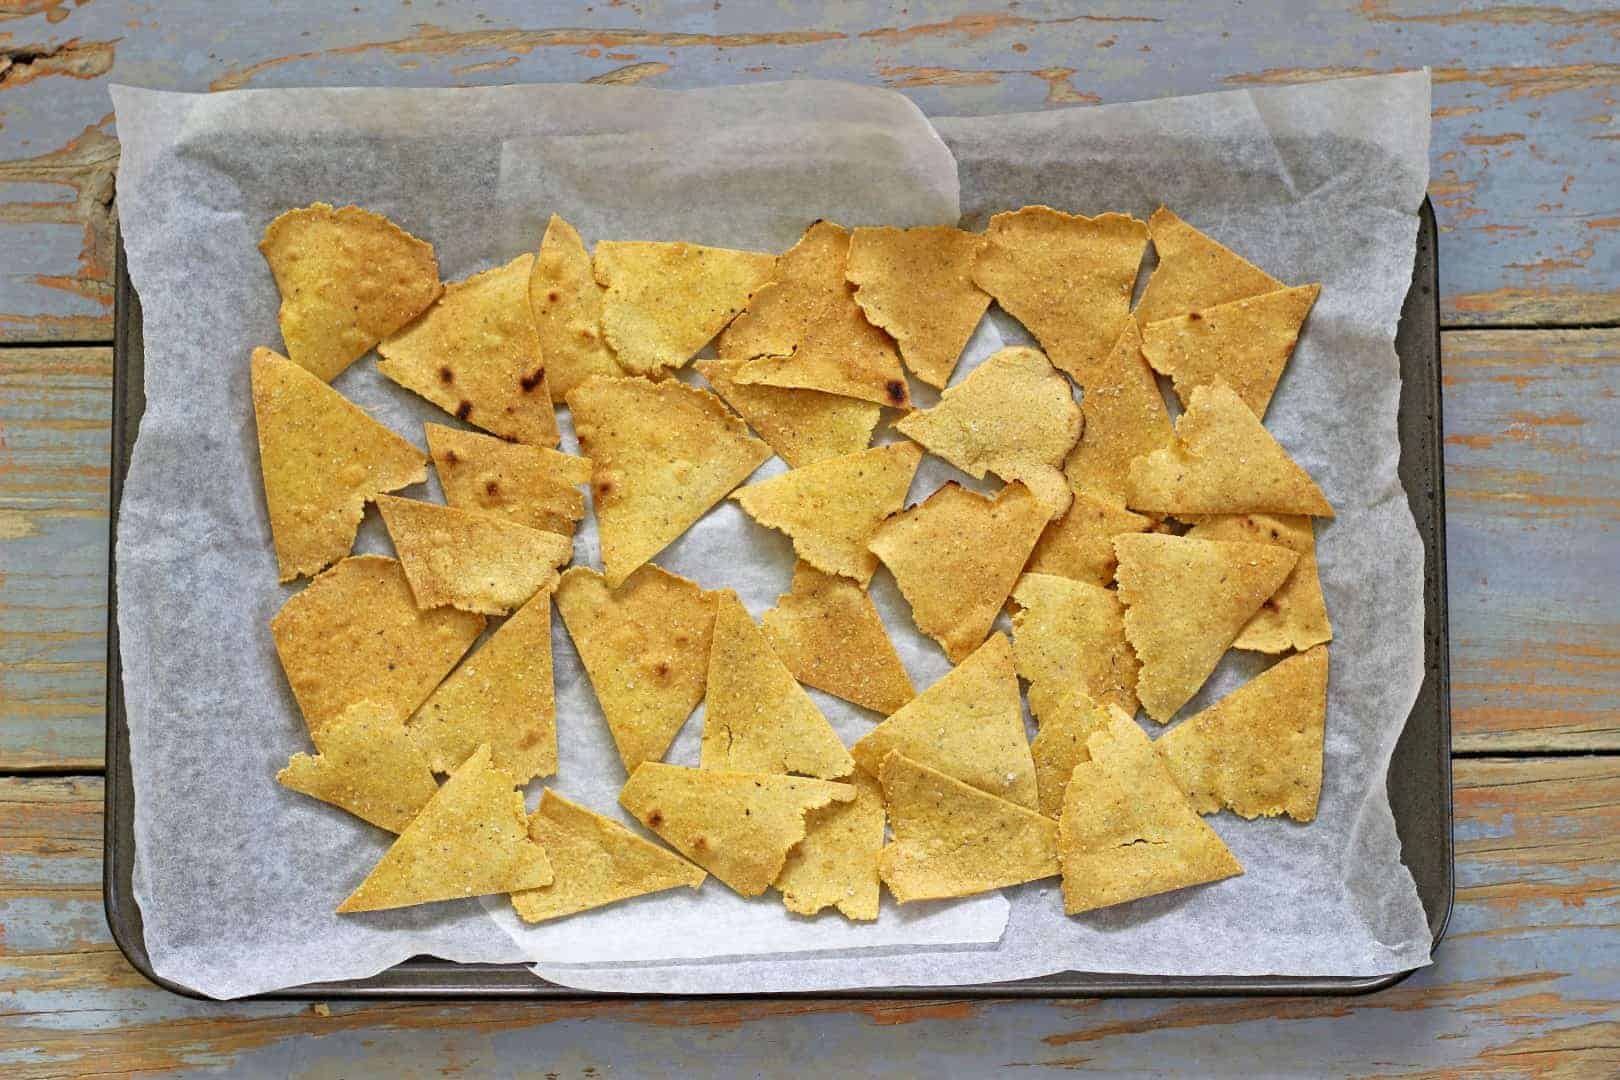 My new favourite snack time BFF - homemade corn chips...arriba!